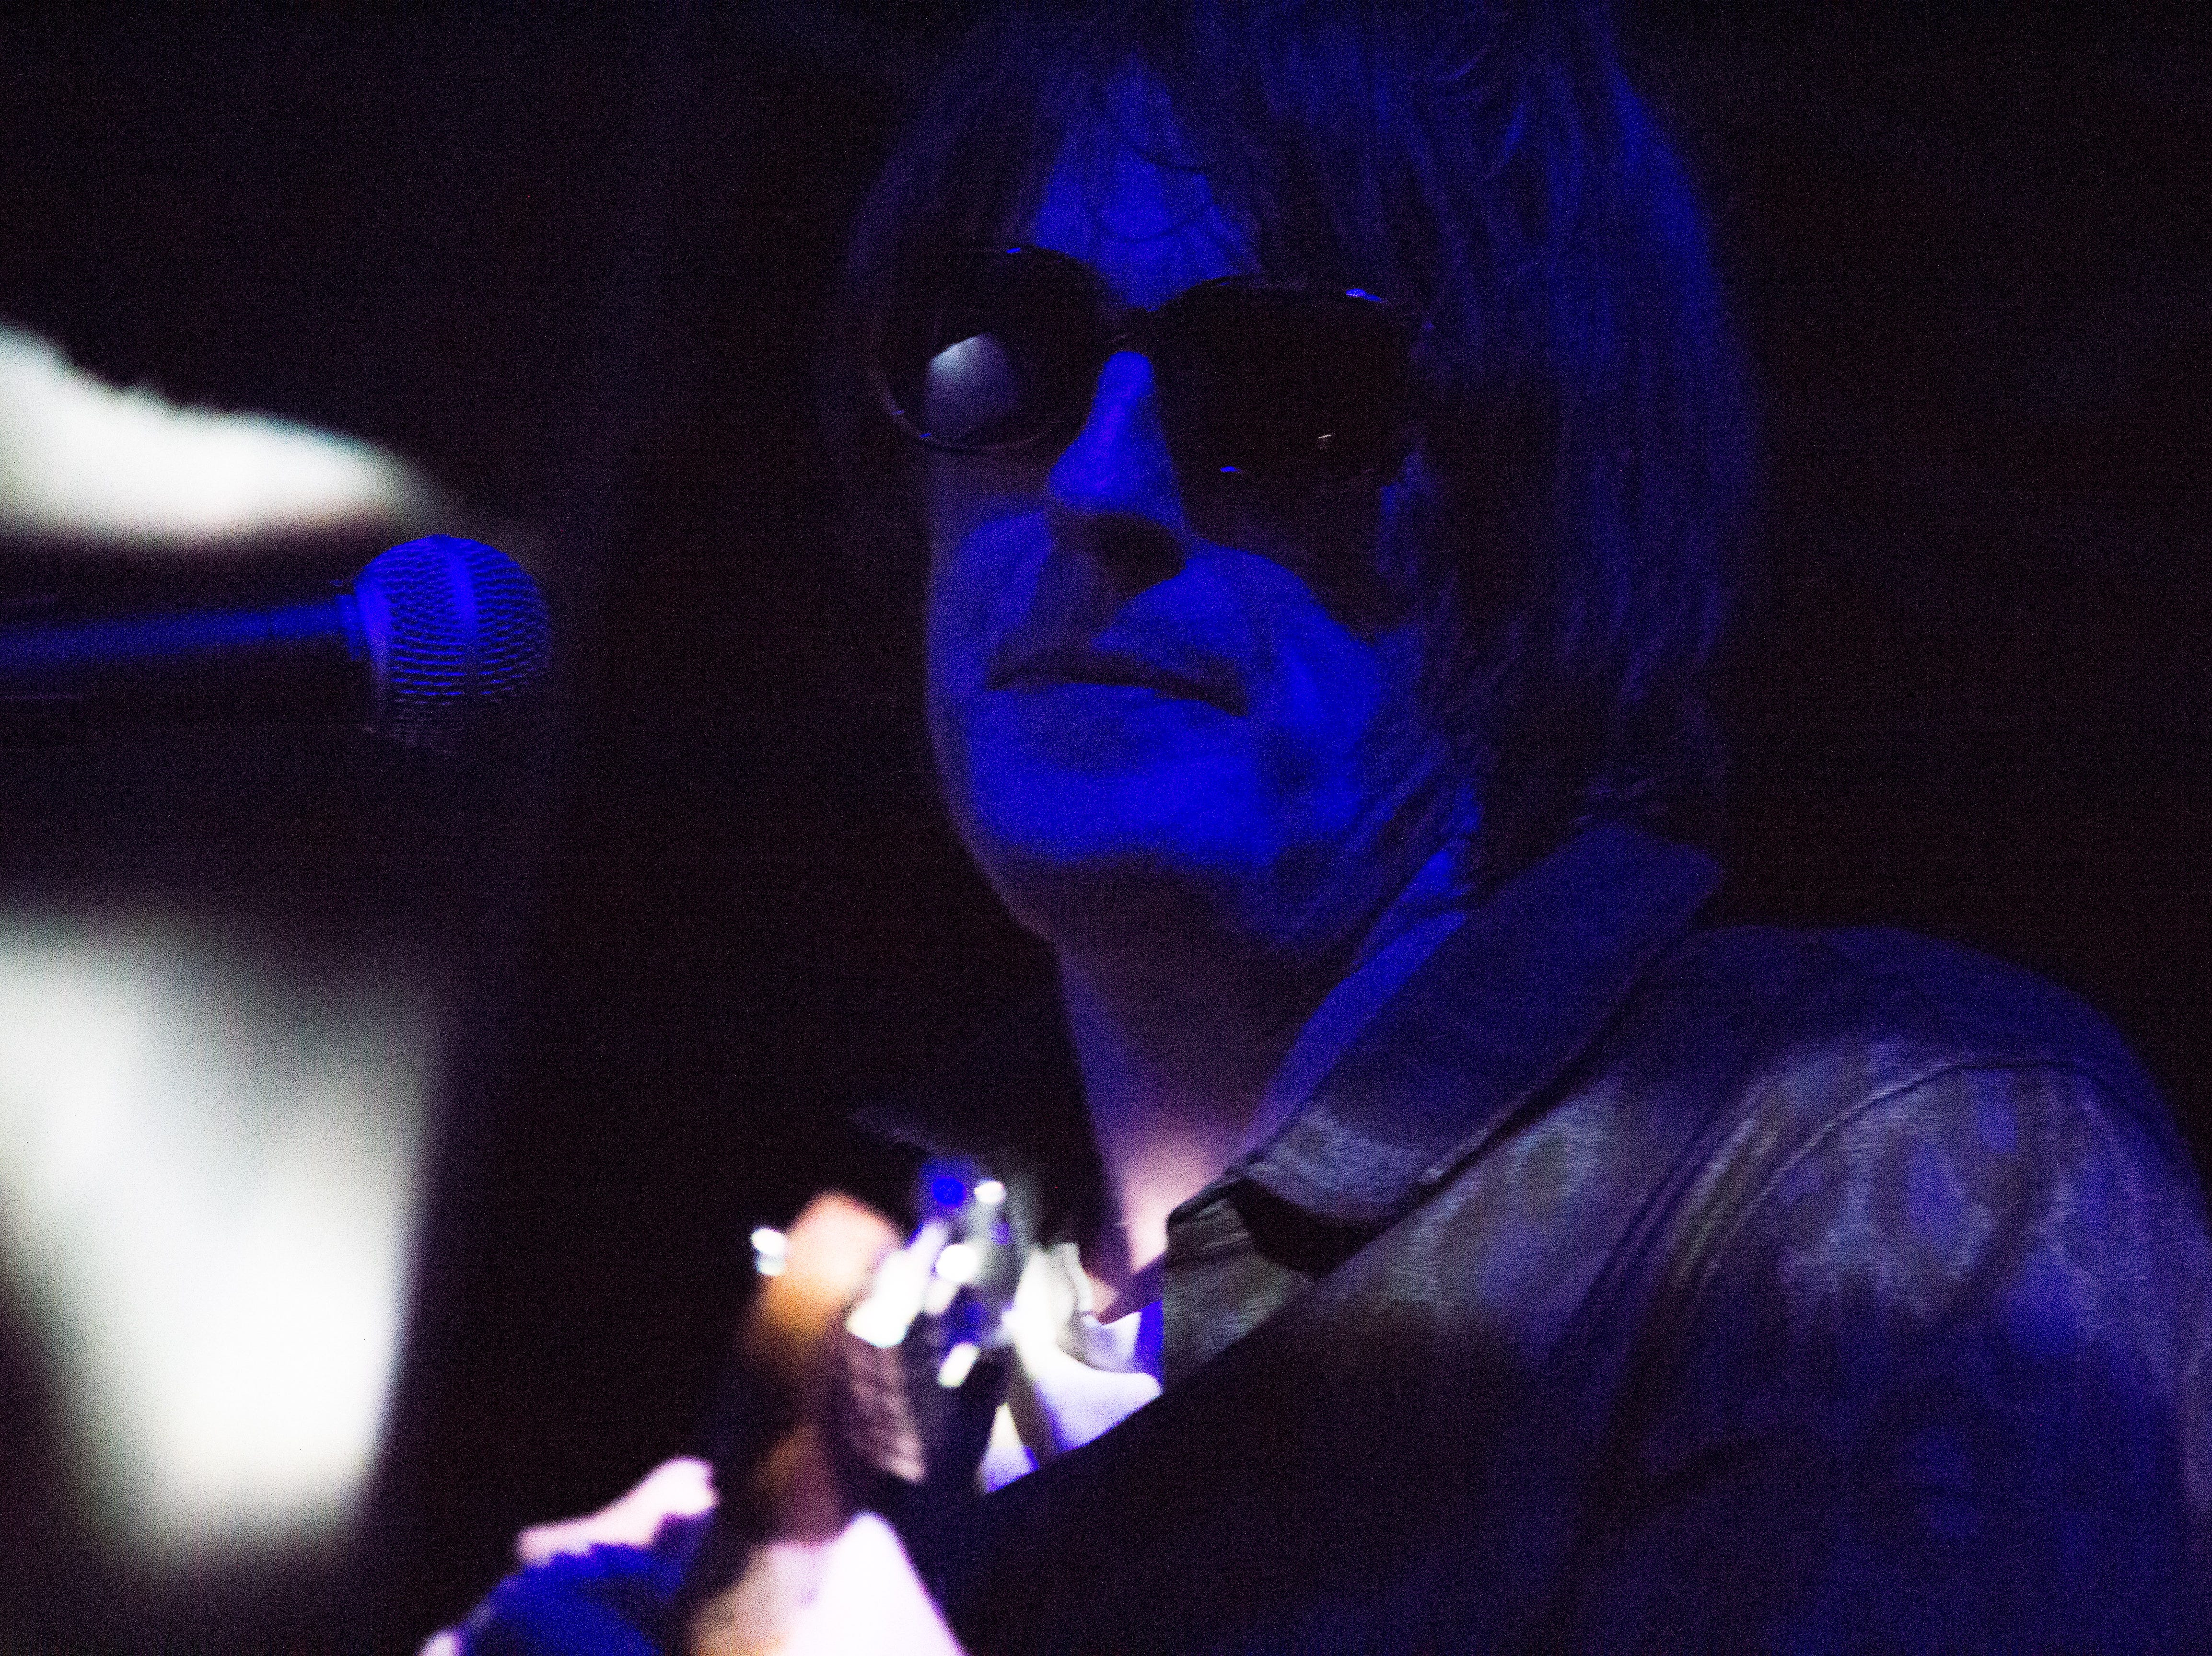 Spiritualized performs at the Mill & Mine during Big Ears Festival 2019 in Knoxville, Tennessee on Friday, March 22, 2019.